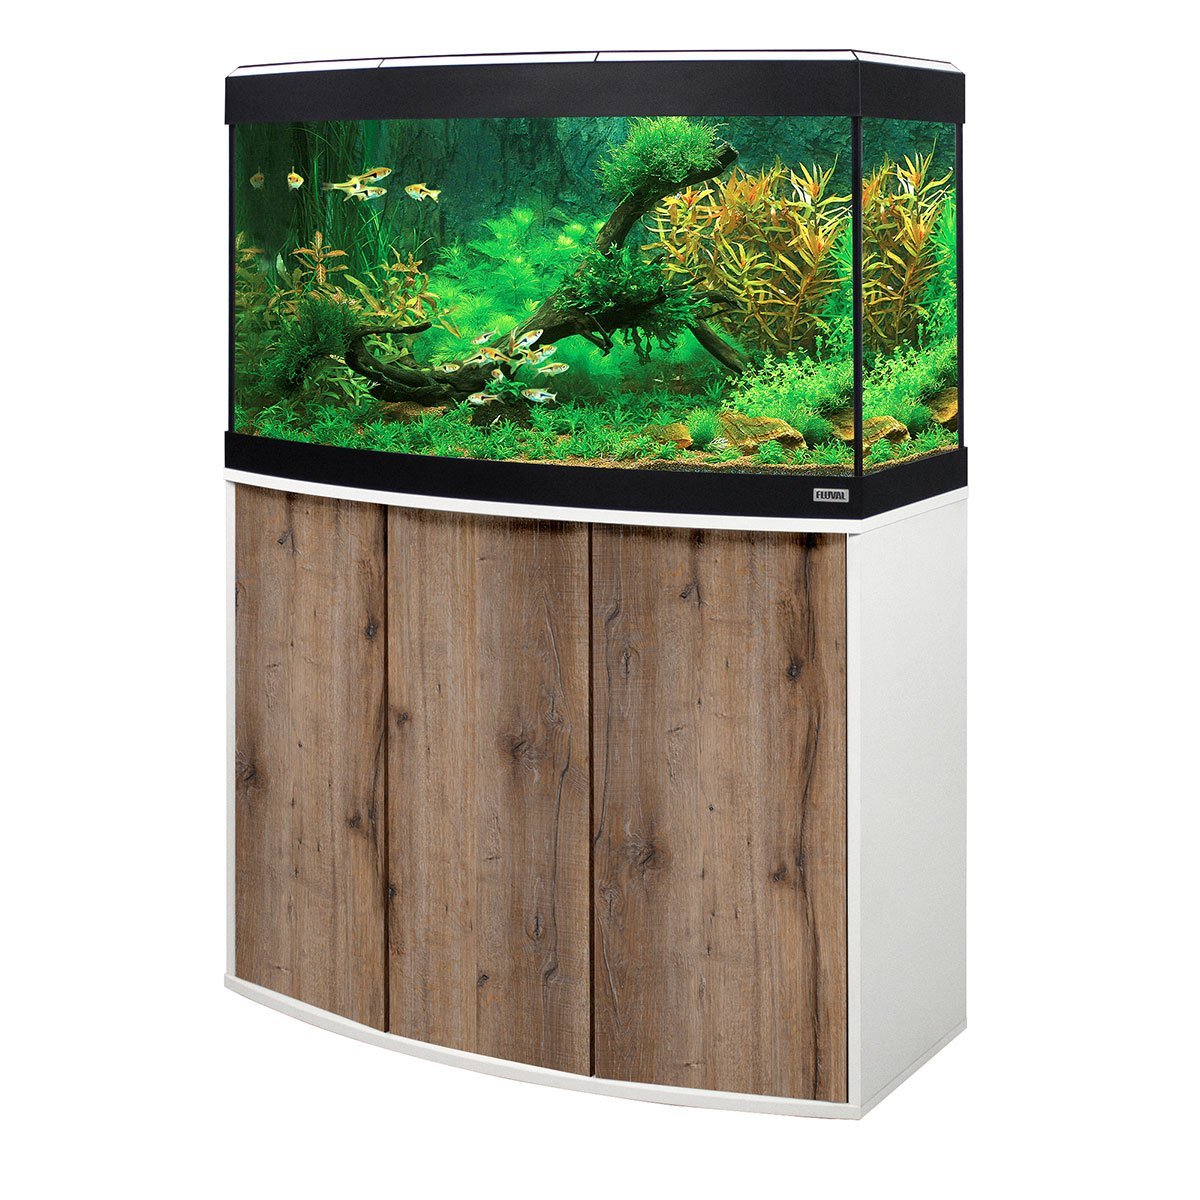 fluval panoramaaquarium mit led beleuchtung vicenza 180. Black Bedroom Furniture Sets. Home Design Ideas